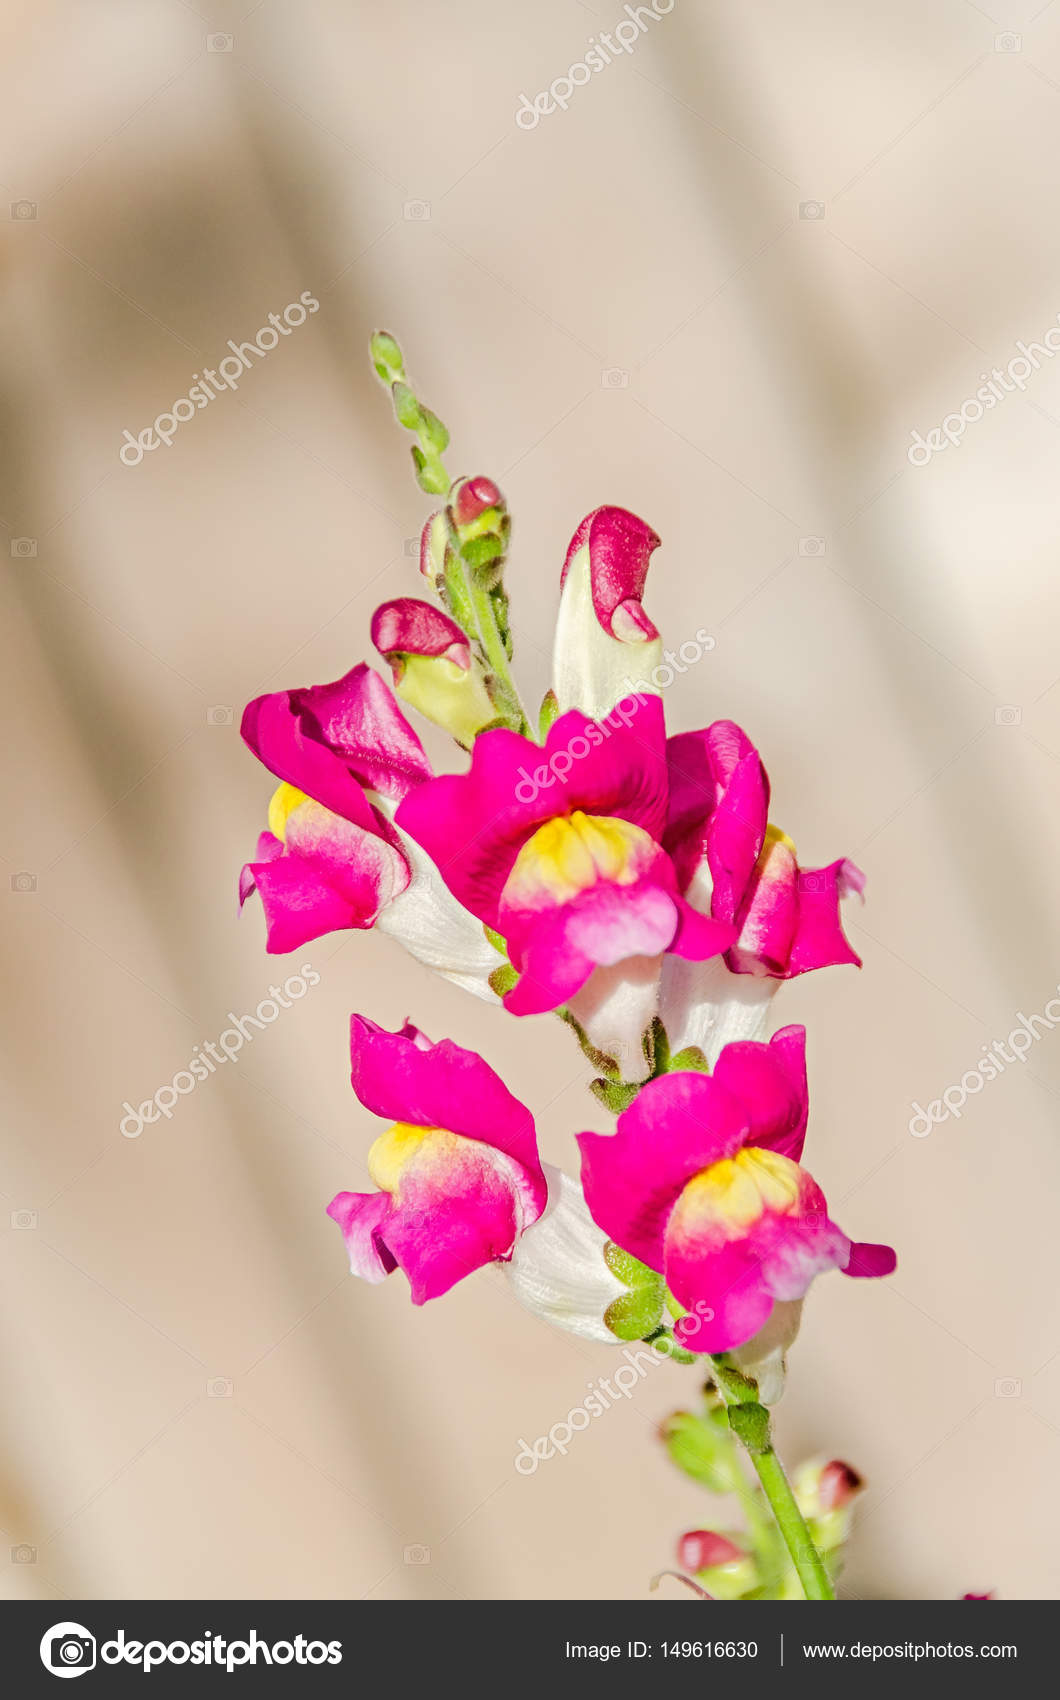 red with yellow antirrhinums dragon flowers or snapdragons stock